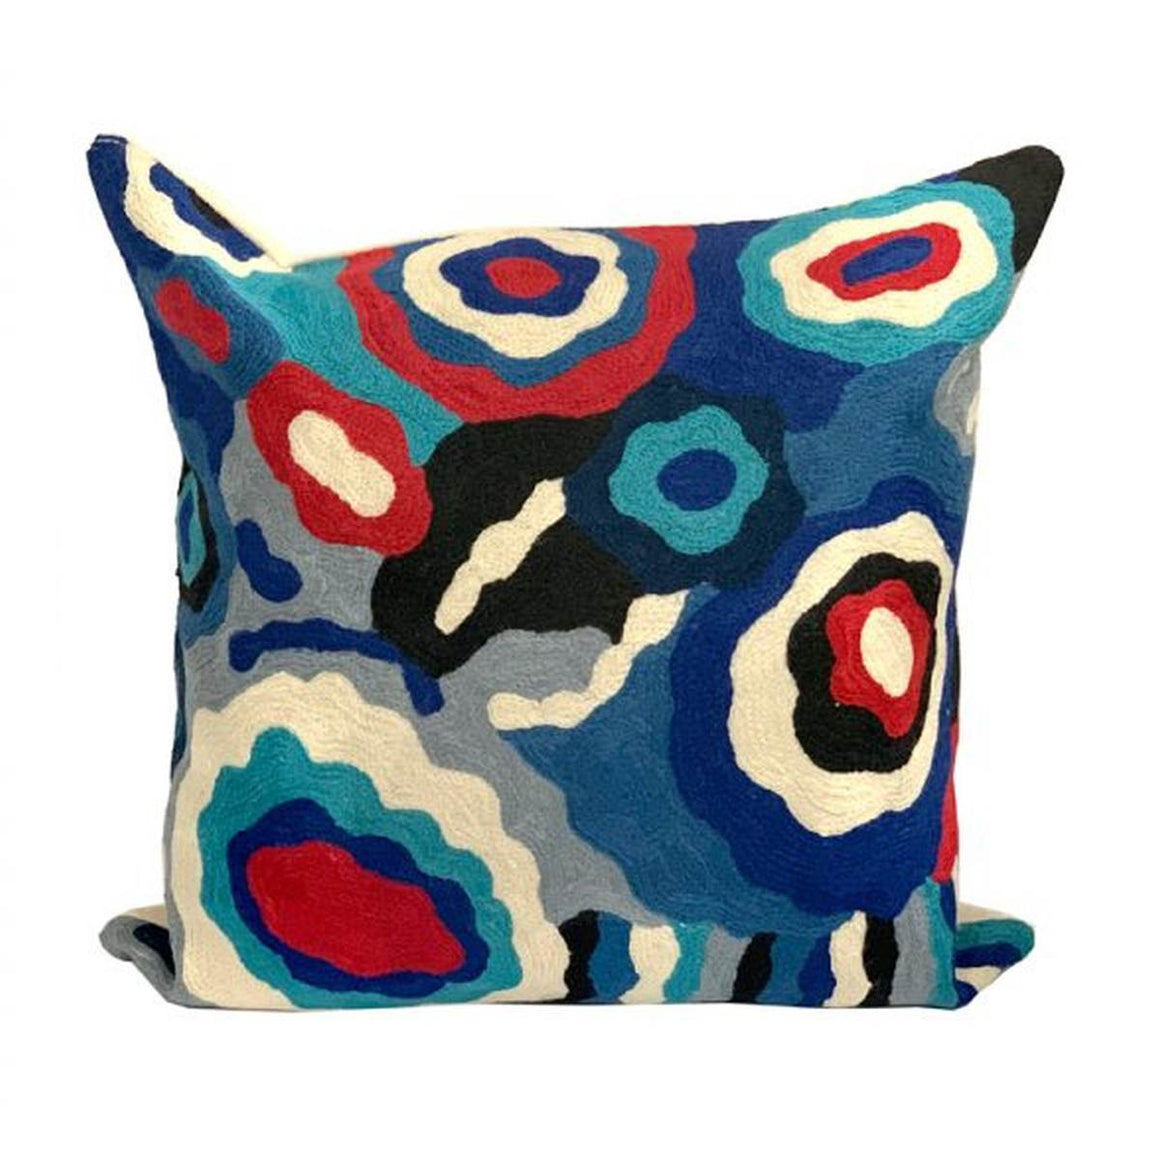 An embroidered wool Cushion featuring an Aboriginal Artwork in Blue, Red, white and black tones.